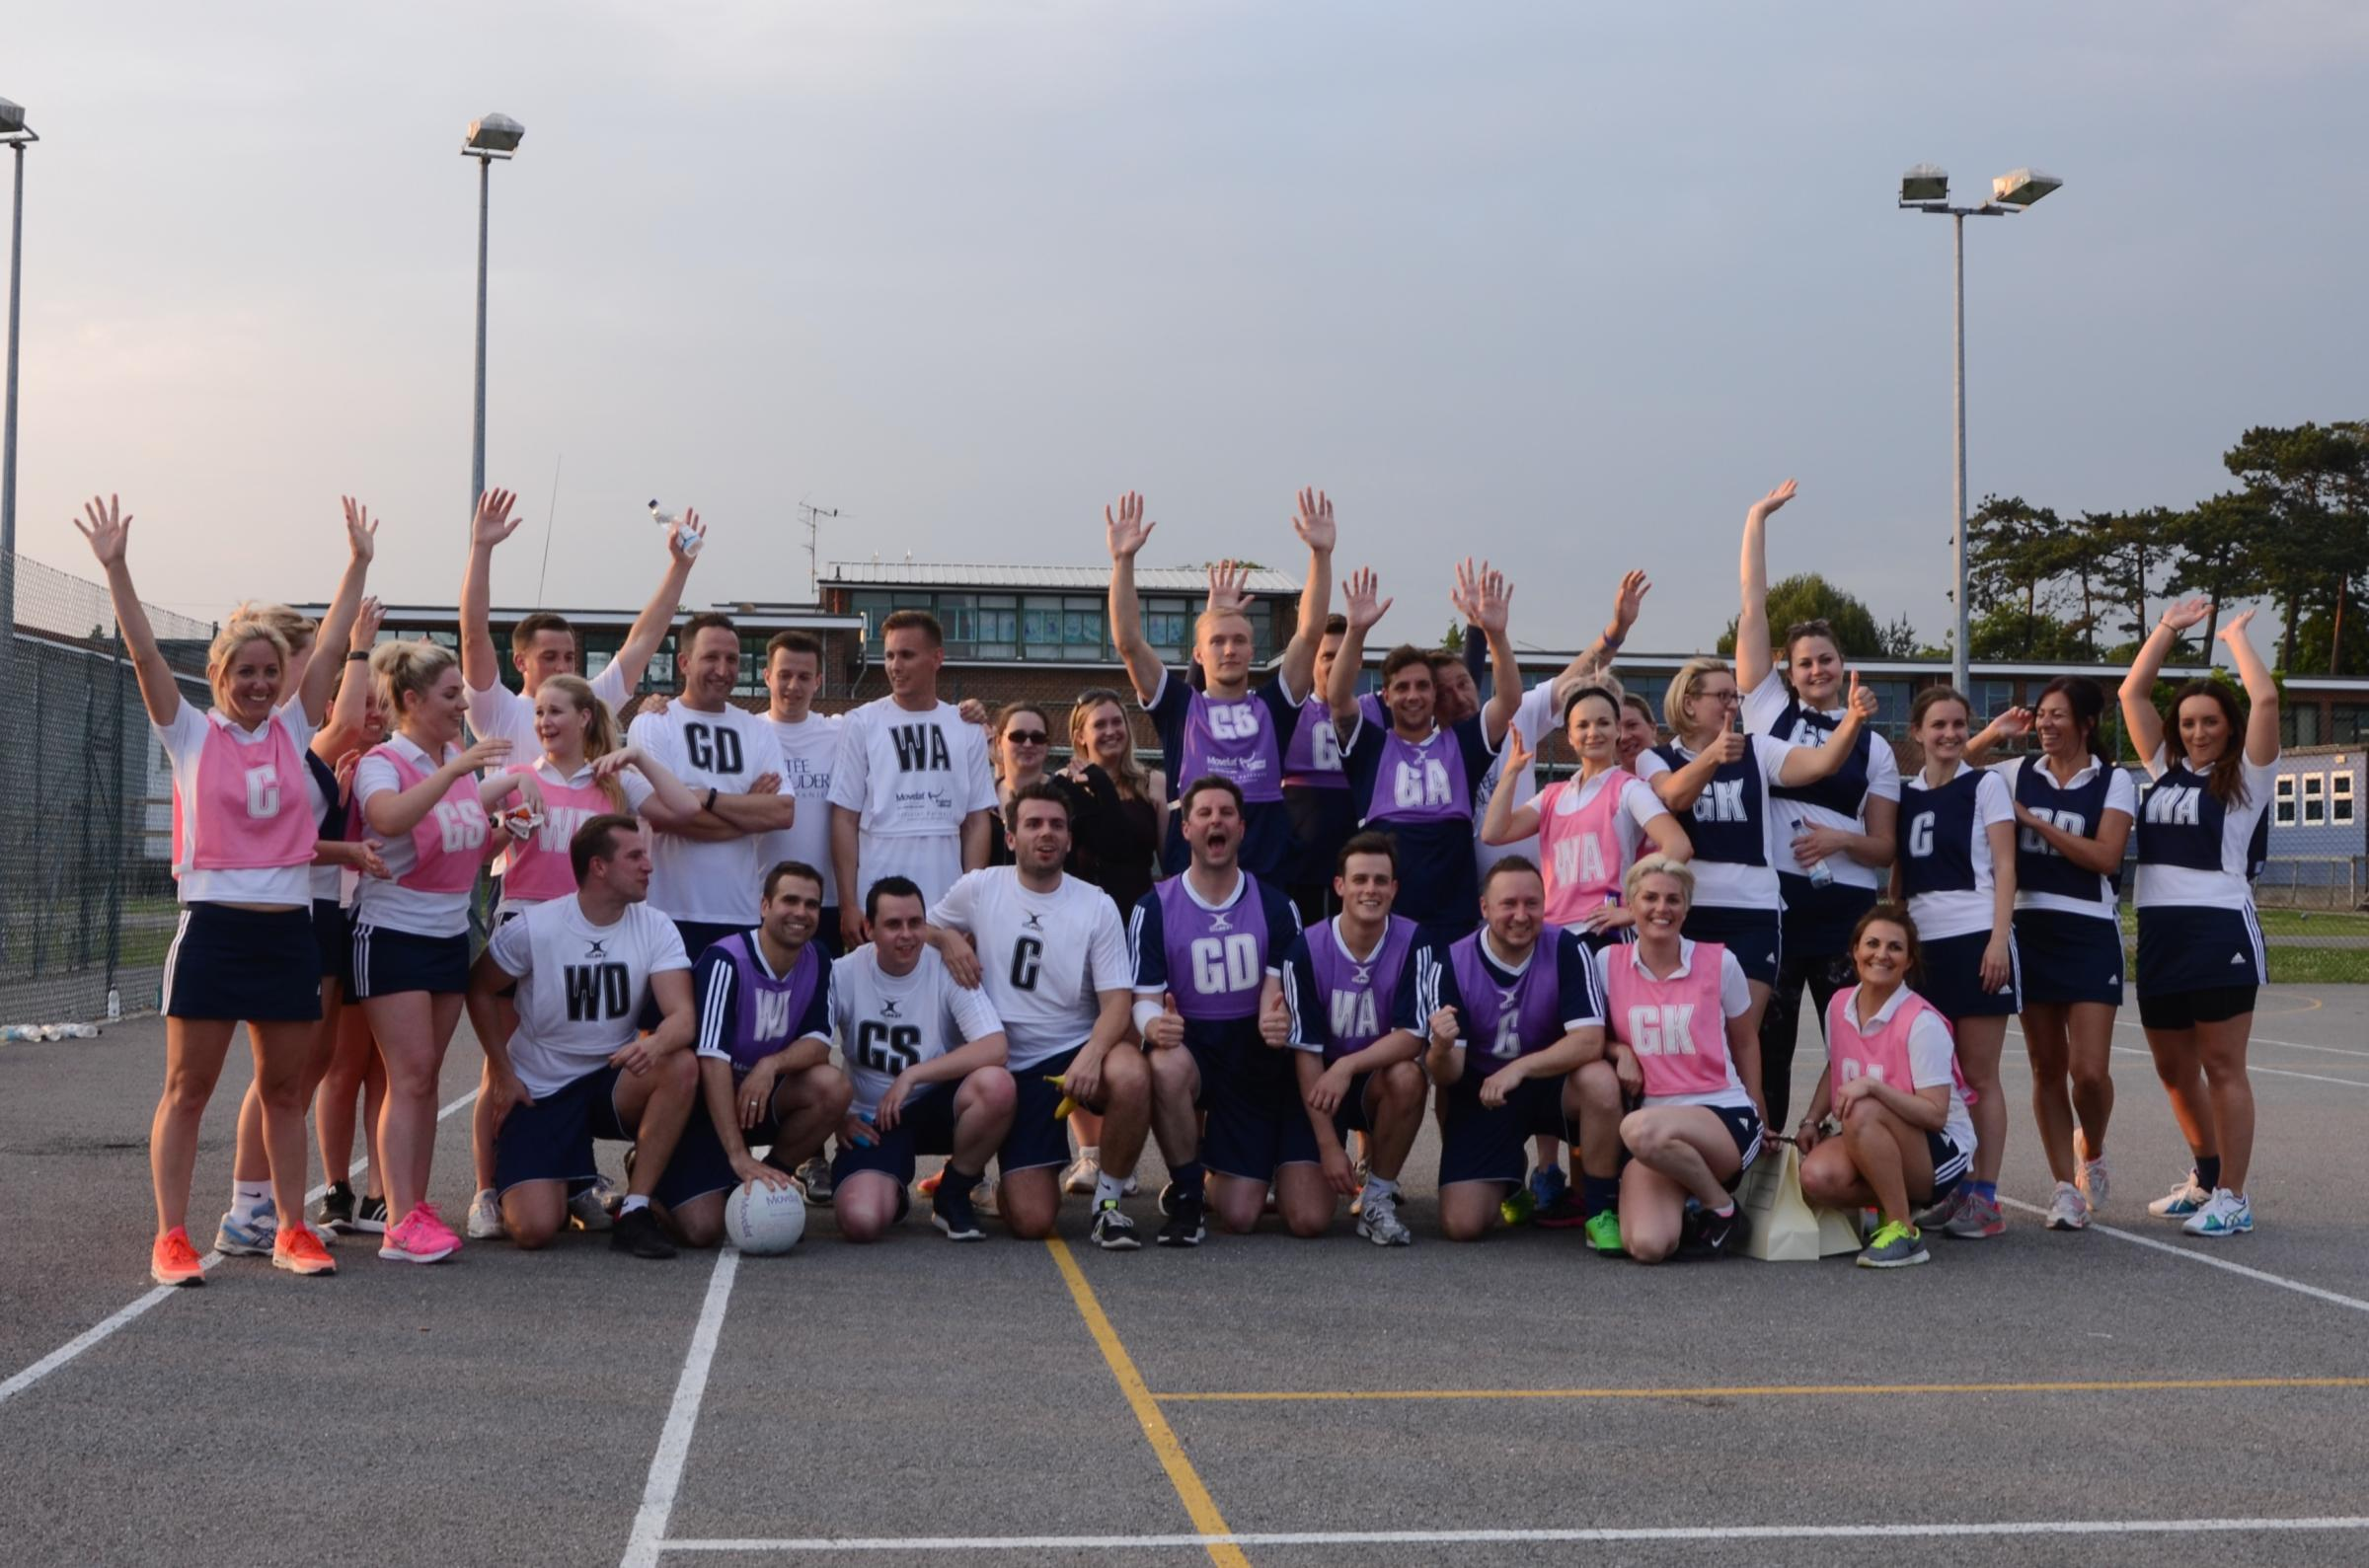 Staff from Estee Lauder at the netball competition